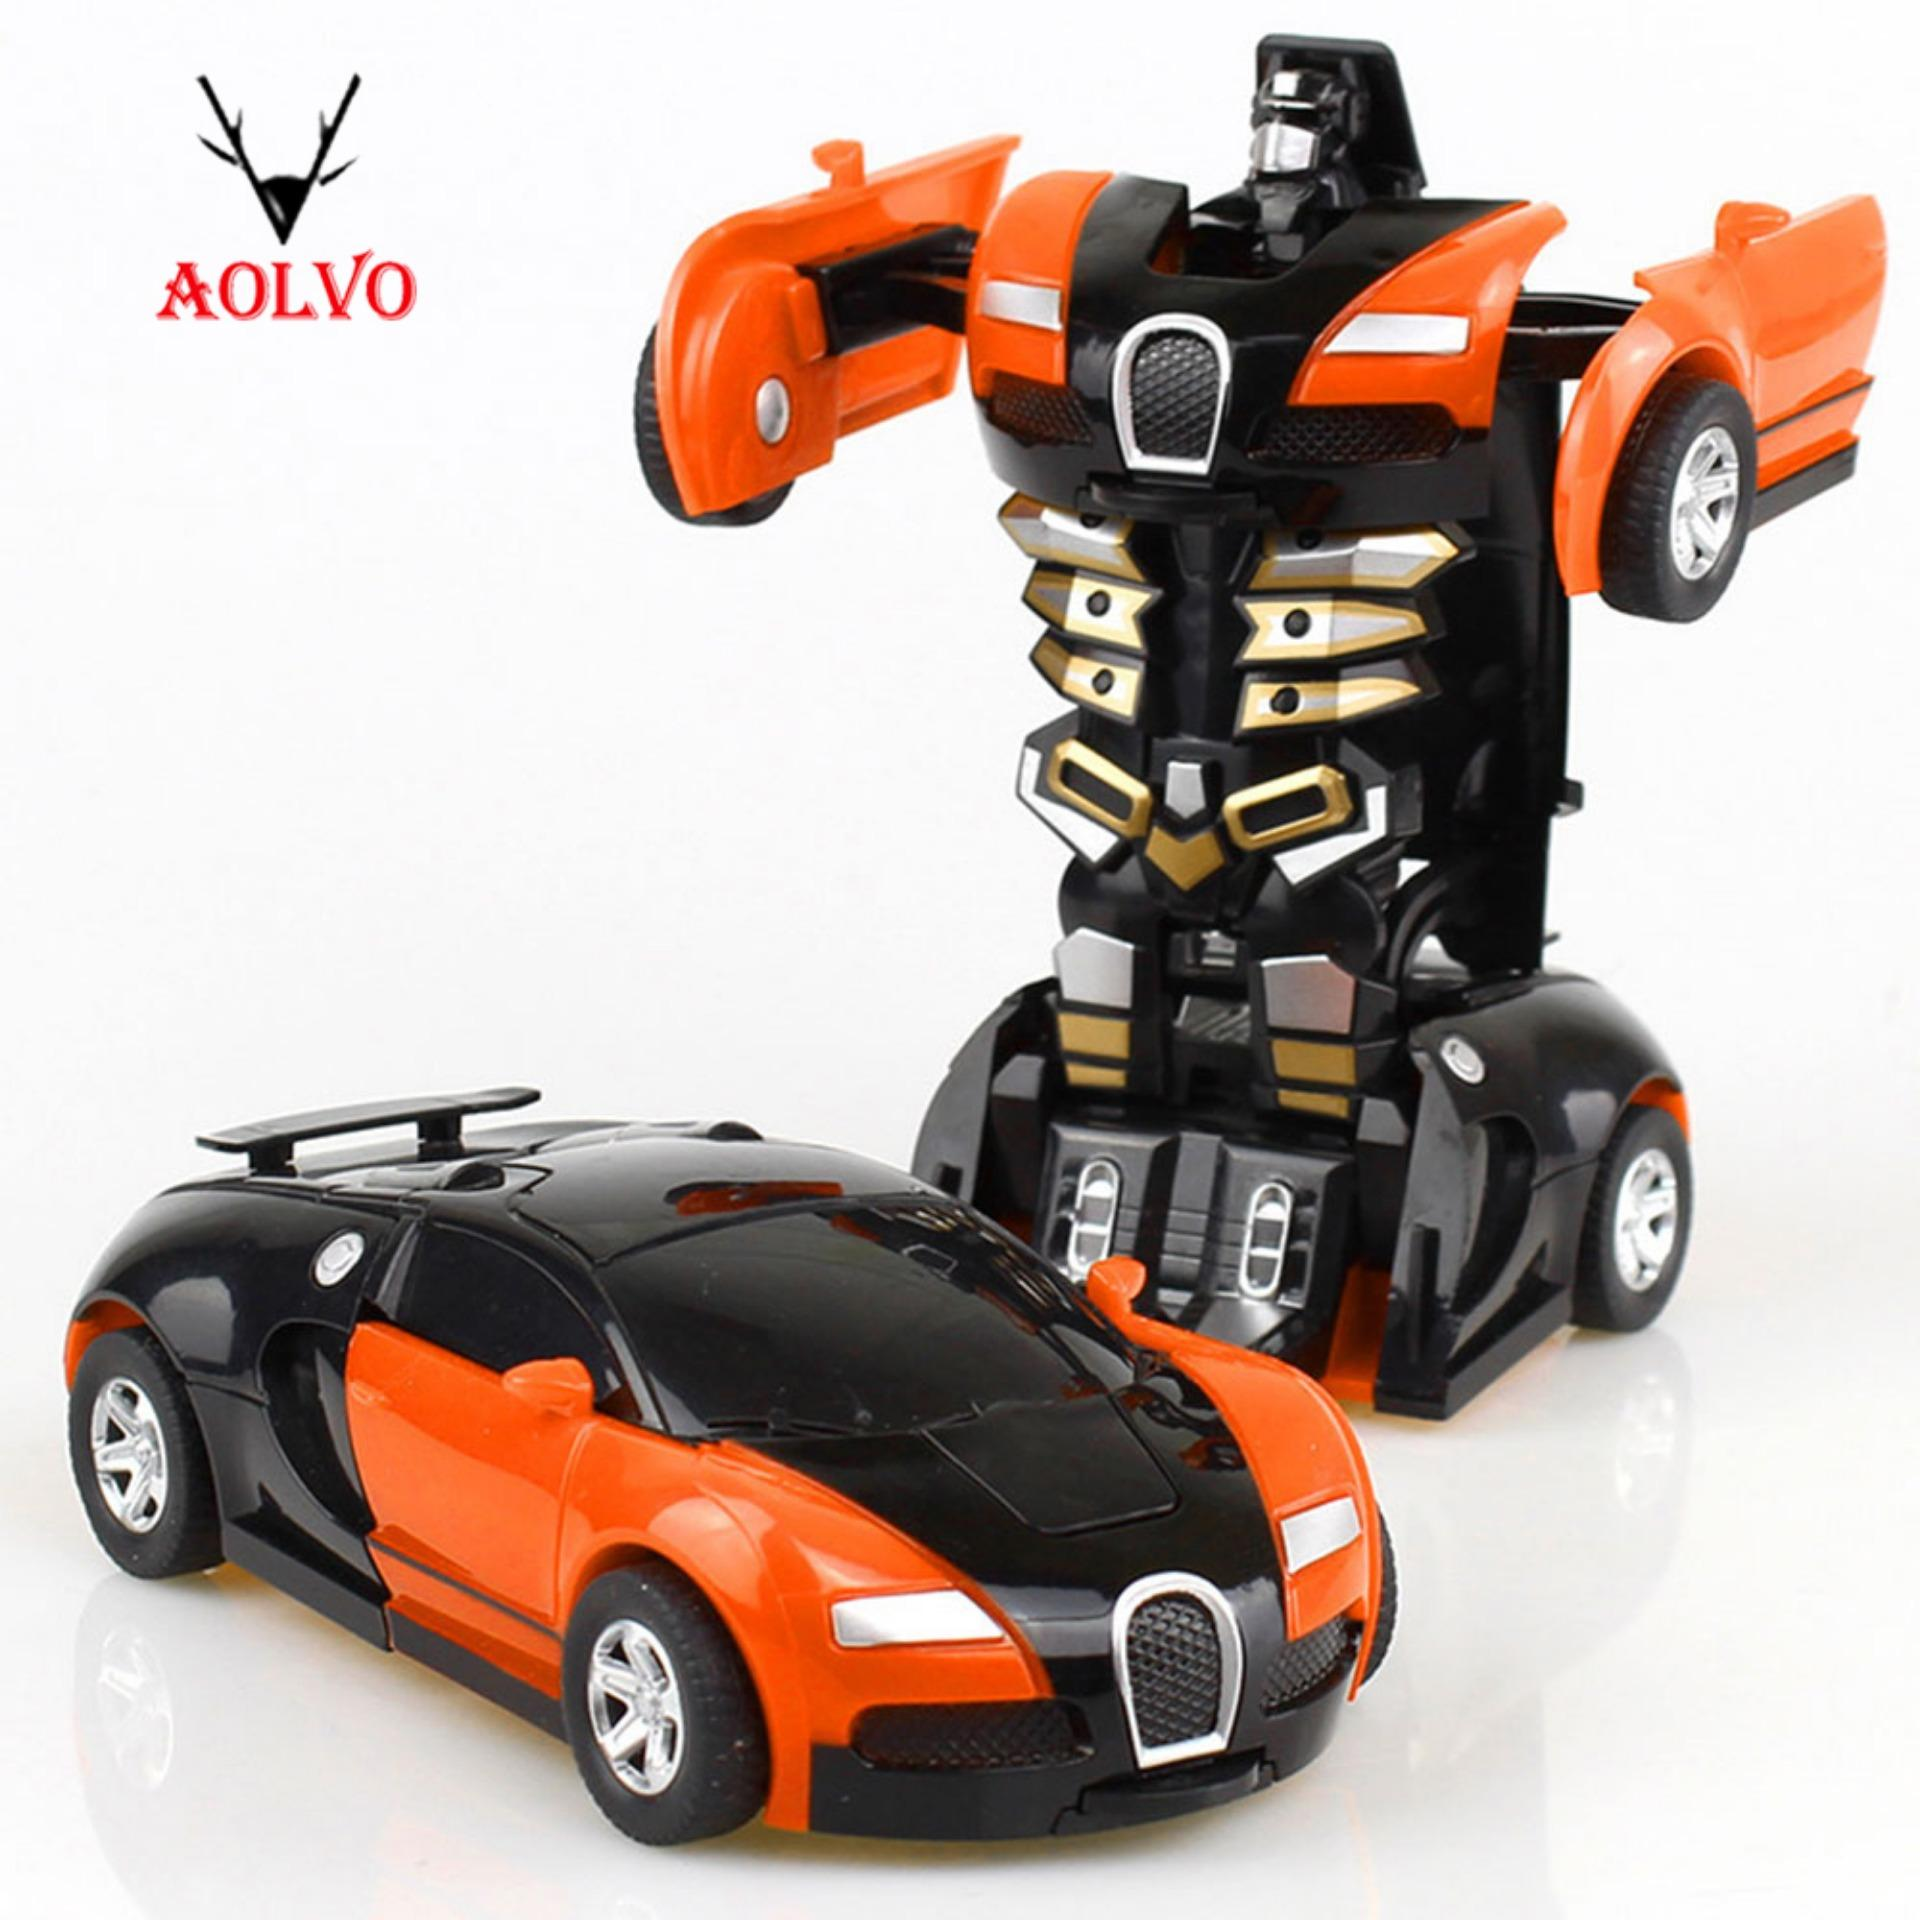 Buy Dolls Action Figures Rc Ride On Toys In Philippines Lazada